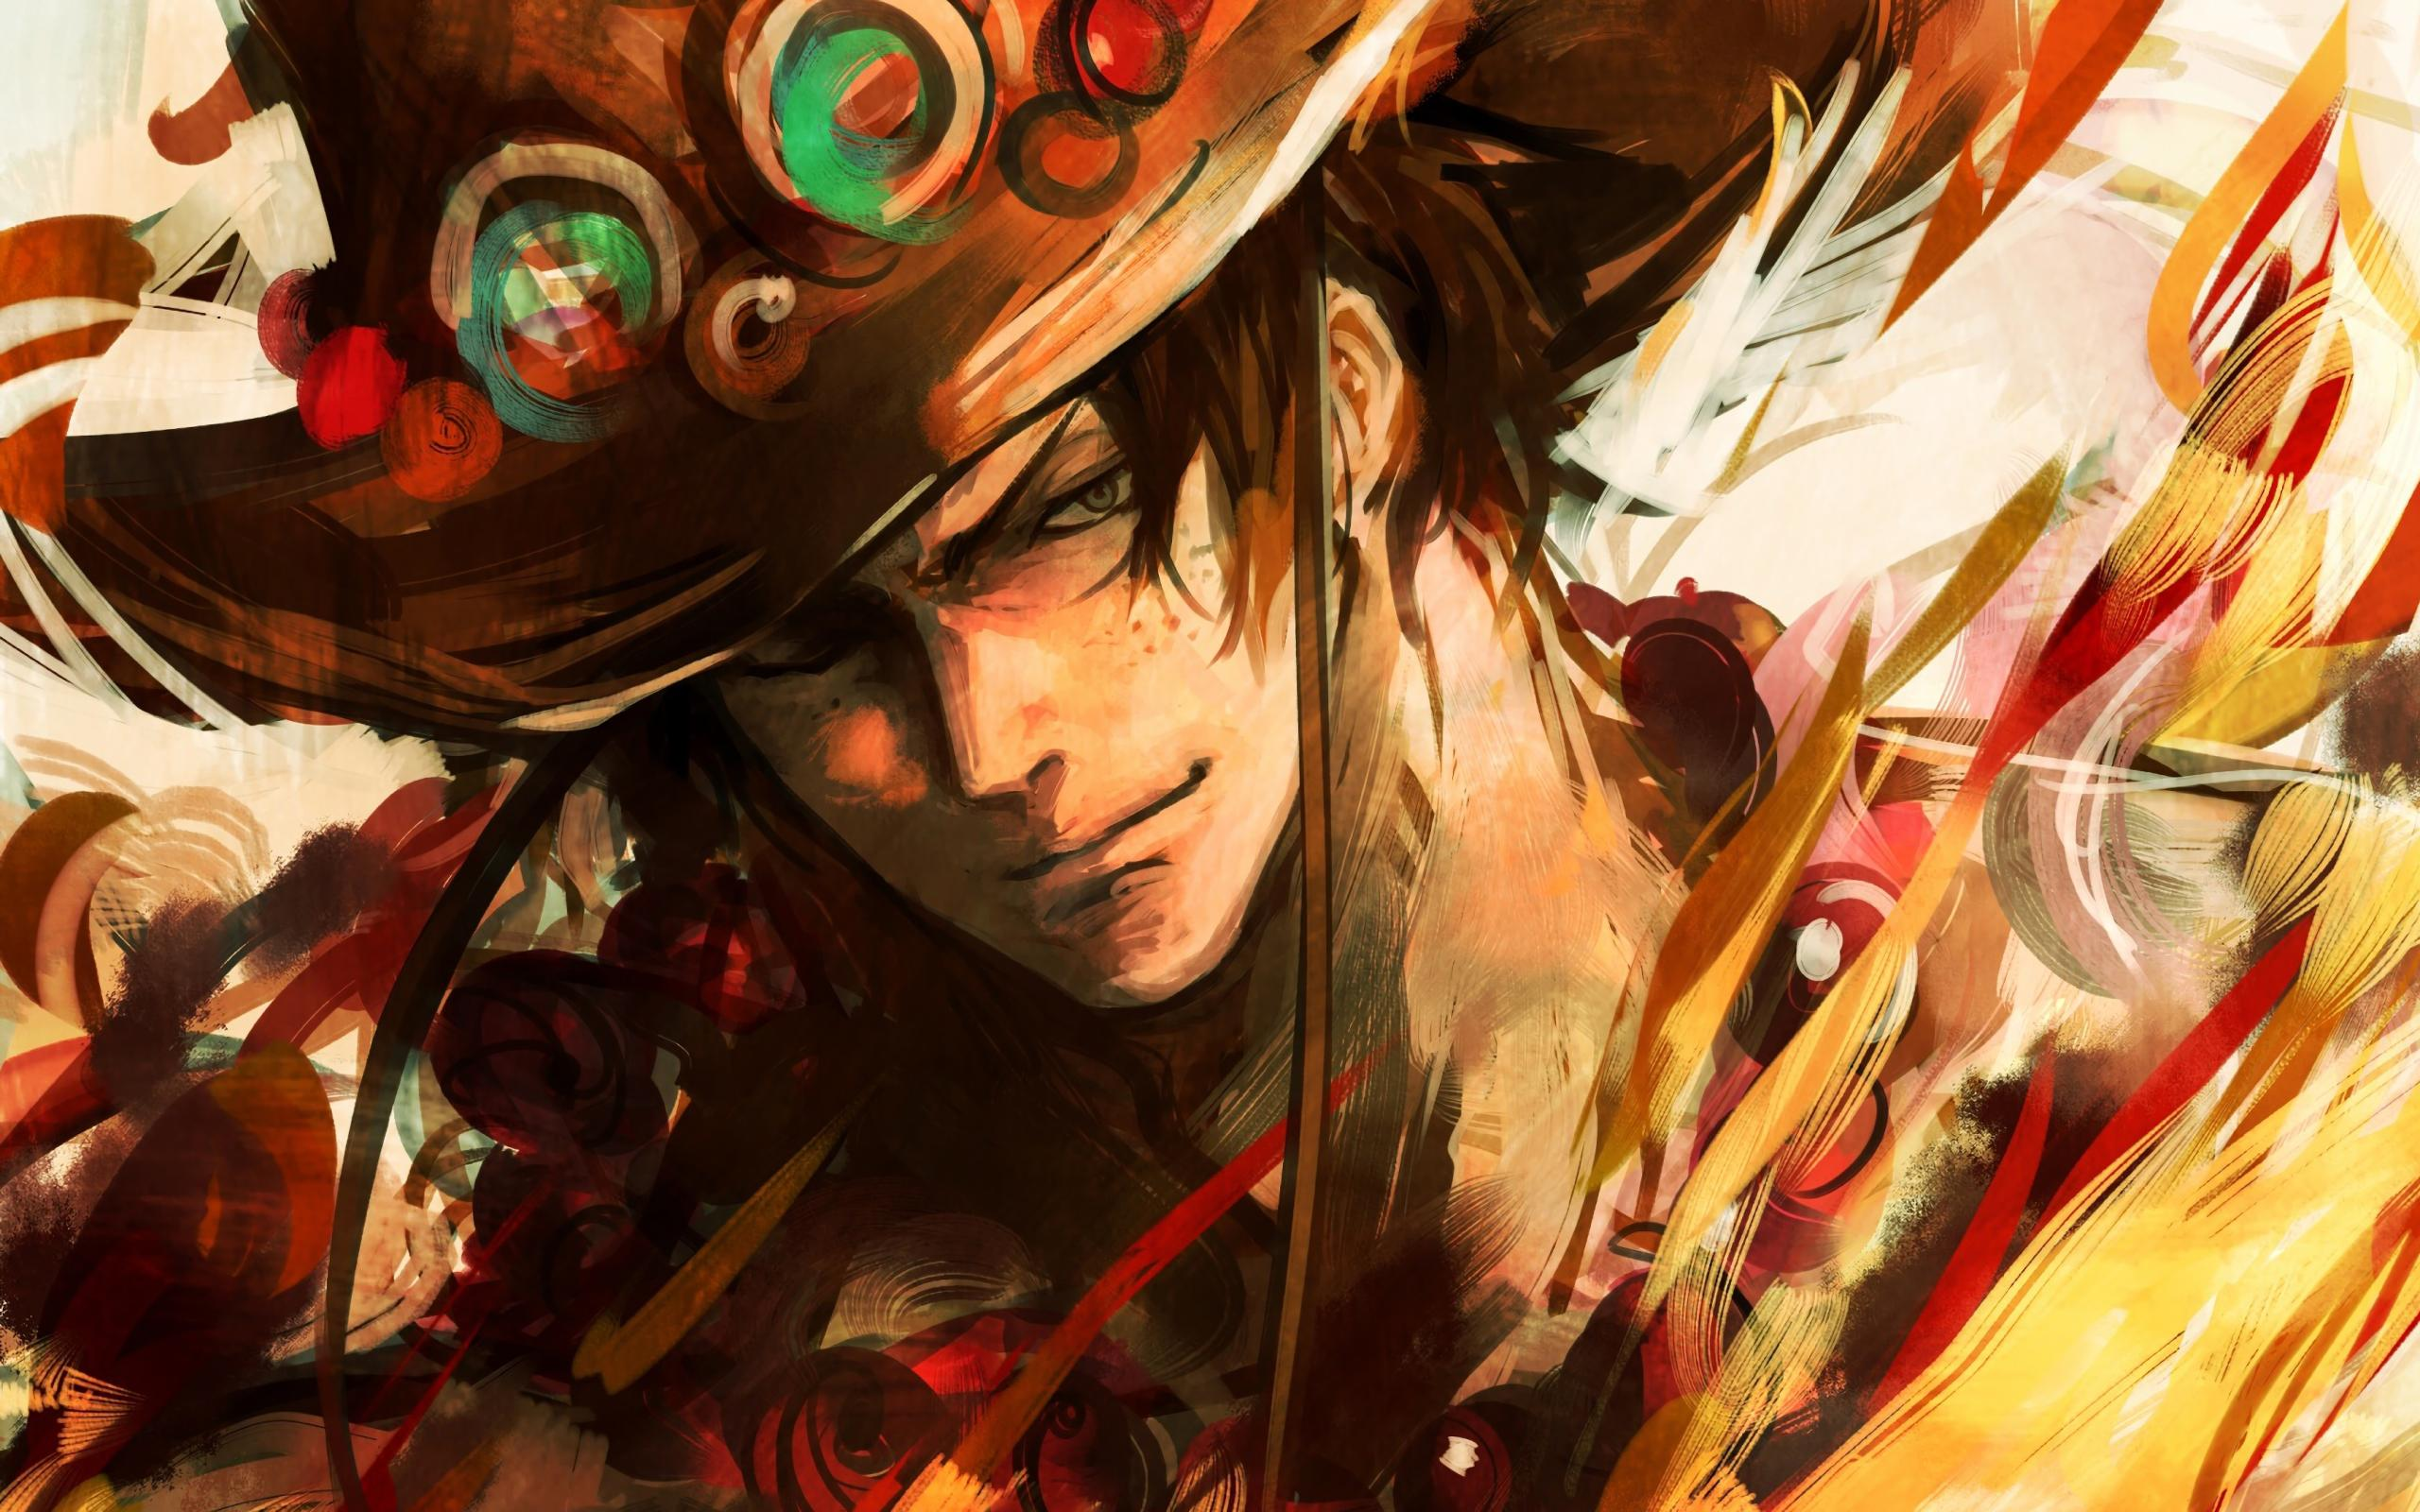 One Piece Ace wallpaper HD (60 Wallpapers) - Adorable Wallpapers